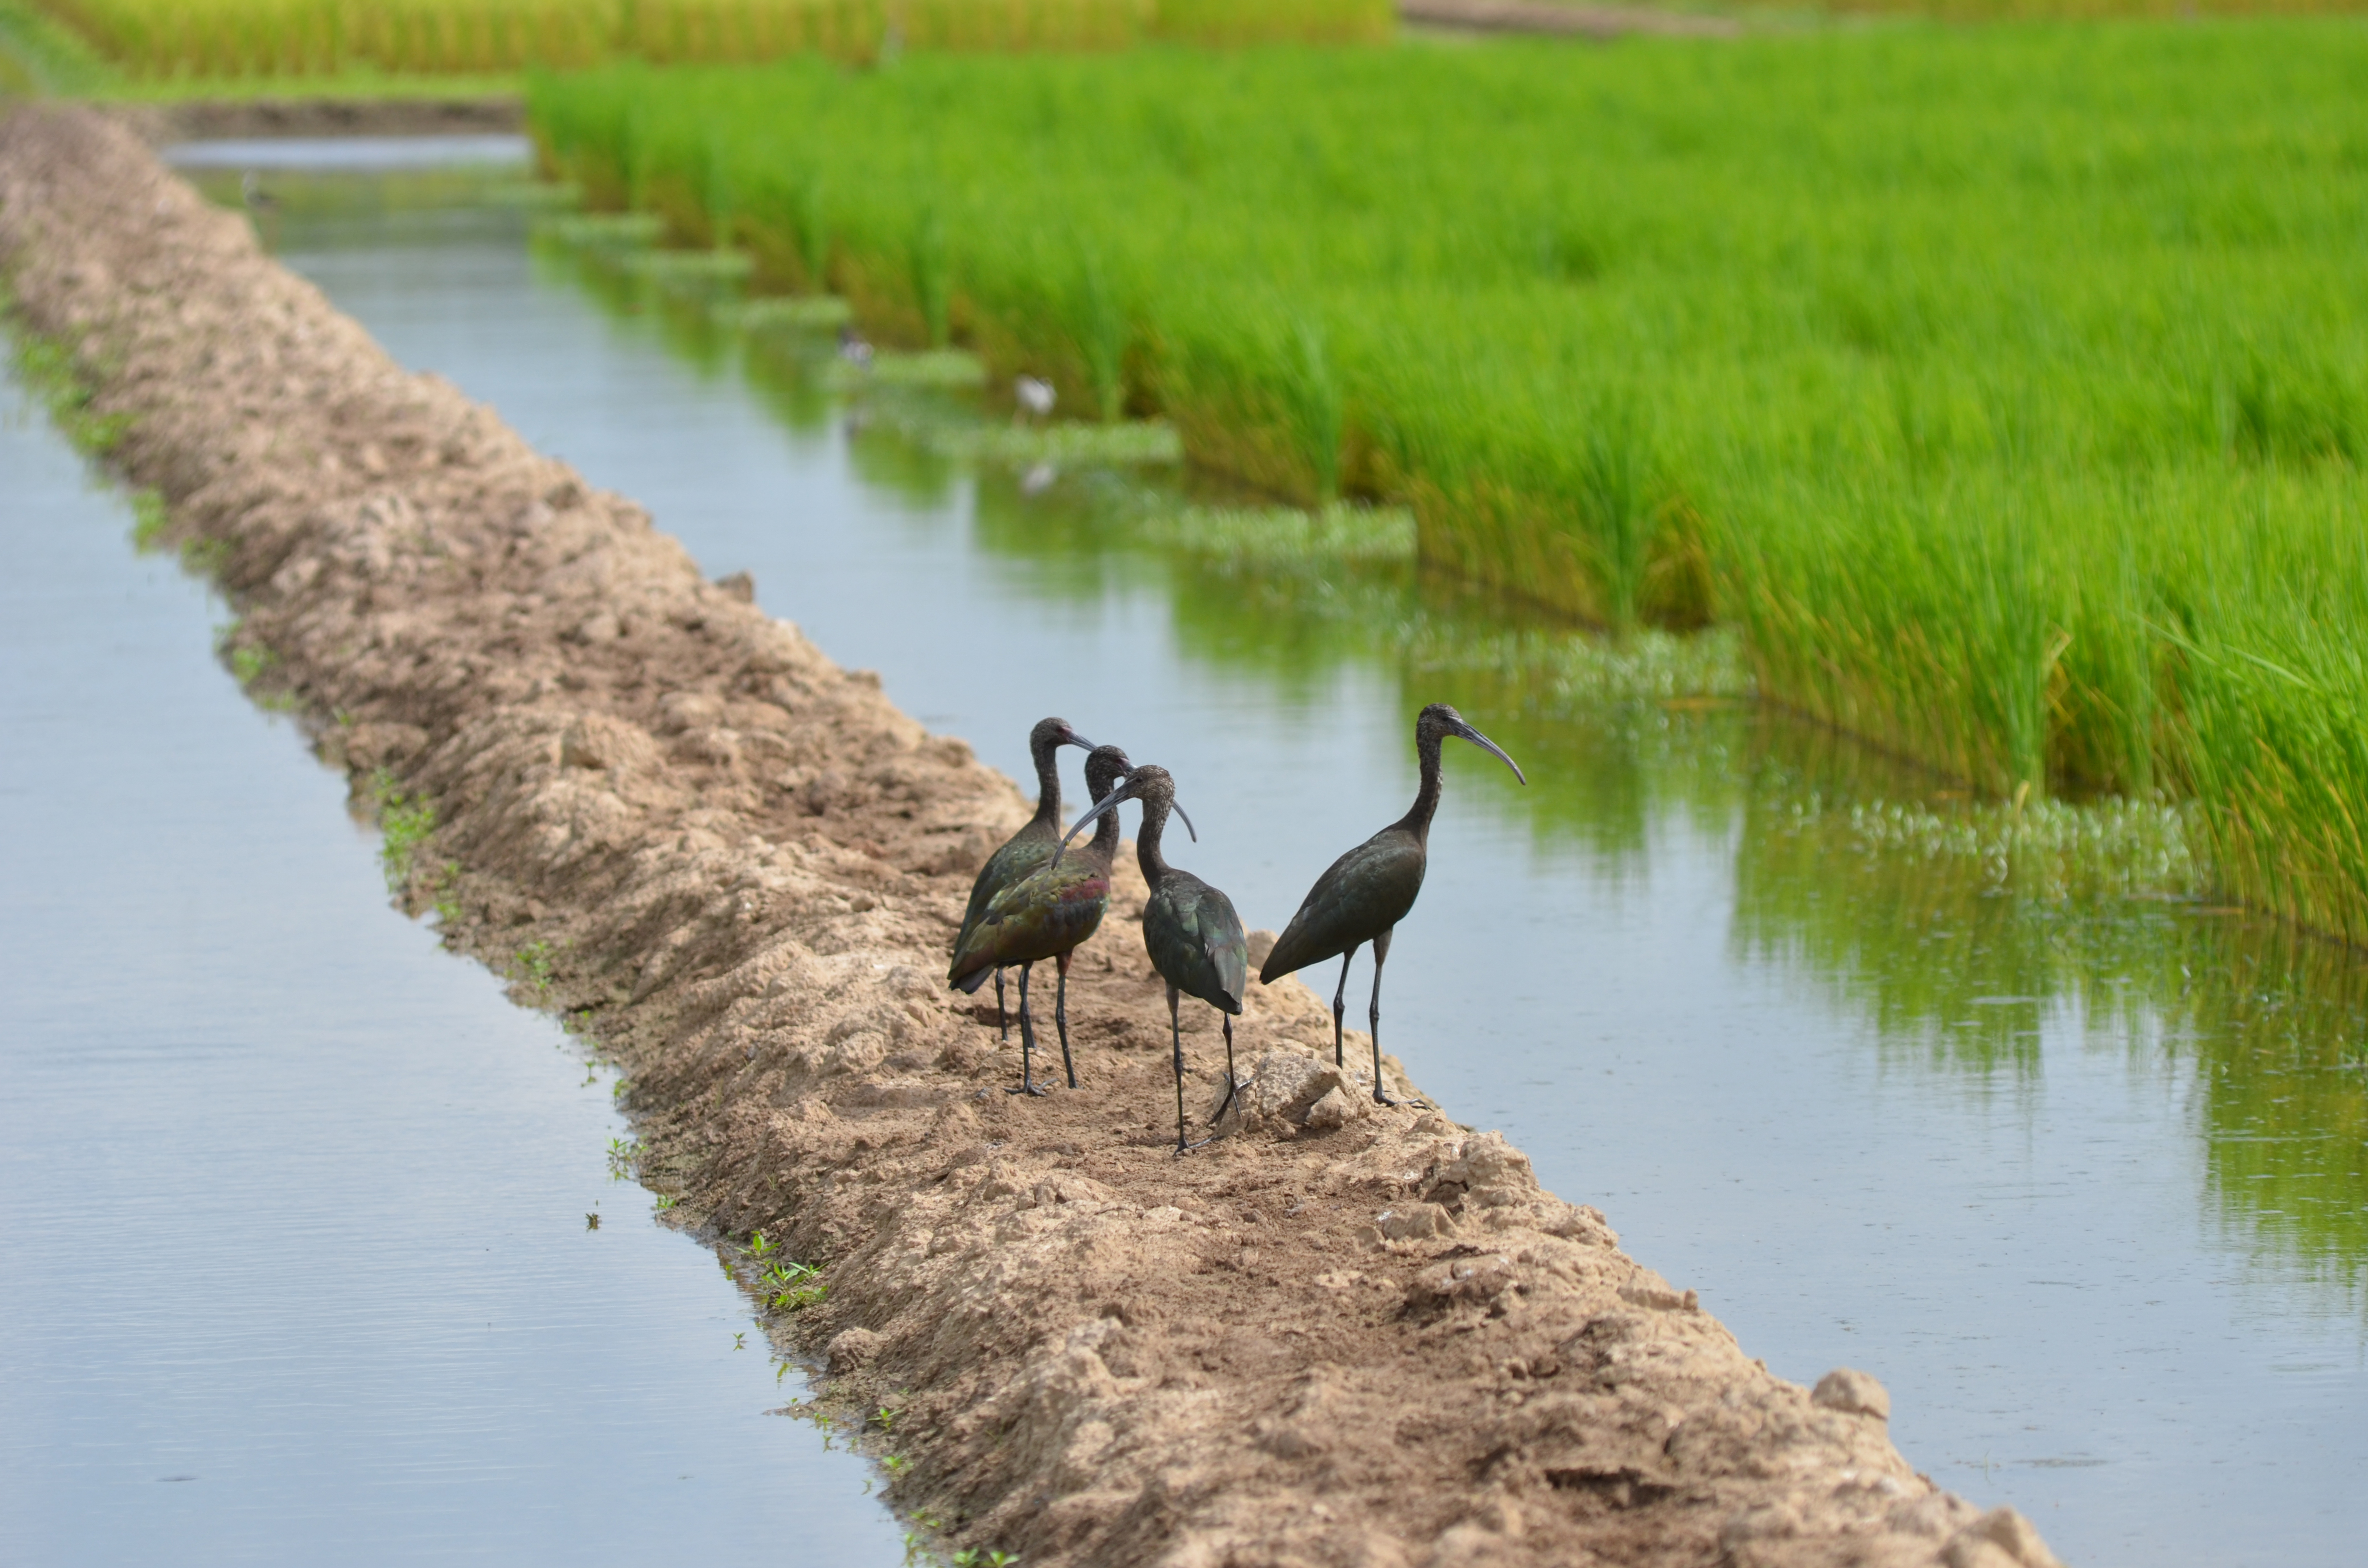 Waterfowl use the rice fields at the LSU AgCenter's Rice Research Station